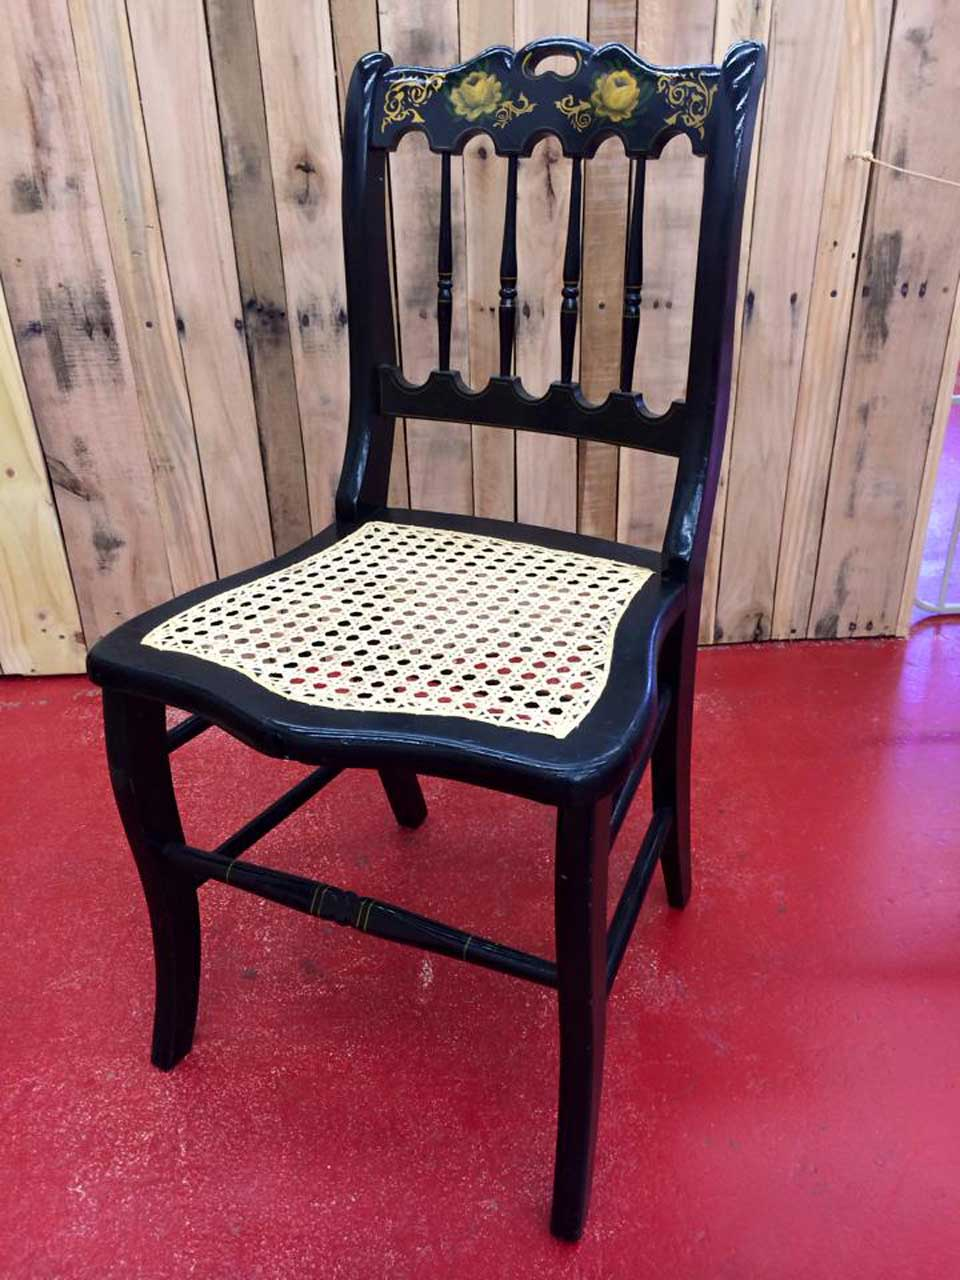 Laced-Cane-Hand-Painted-Chair